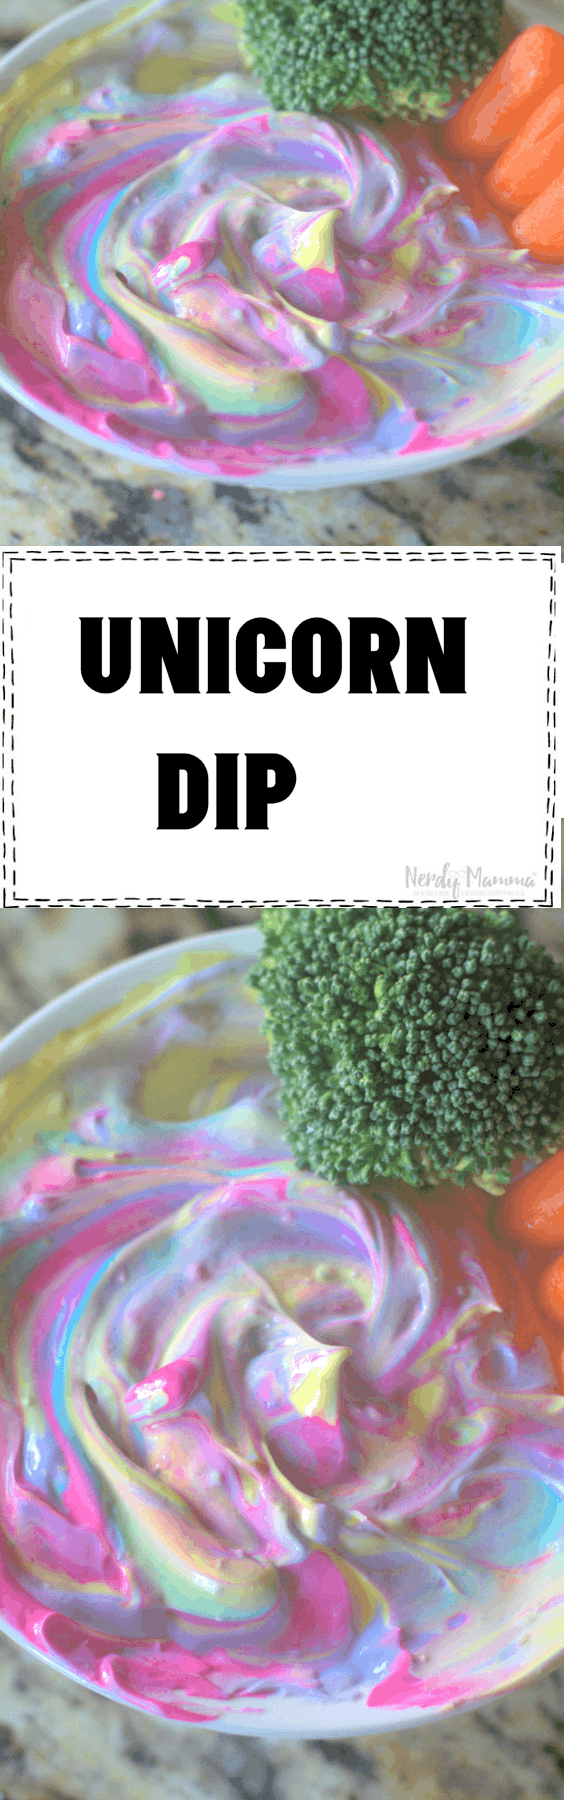 The French Onion Dip you never knew you needed. It's Unicorn Dip. The perfect accompaniment to any broccoli, carrot, chip, whatever. No, really, it's perfect. It's a unicorn product. And everything they make is so awesome, you can't even. #nerdymammablog #unicorn #unicornfood #funfood #UnicornParty #foodforUnicornParty #ridiculousfood #sillyfood #kidfood #frechoniondip